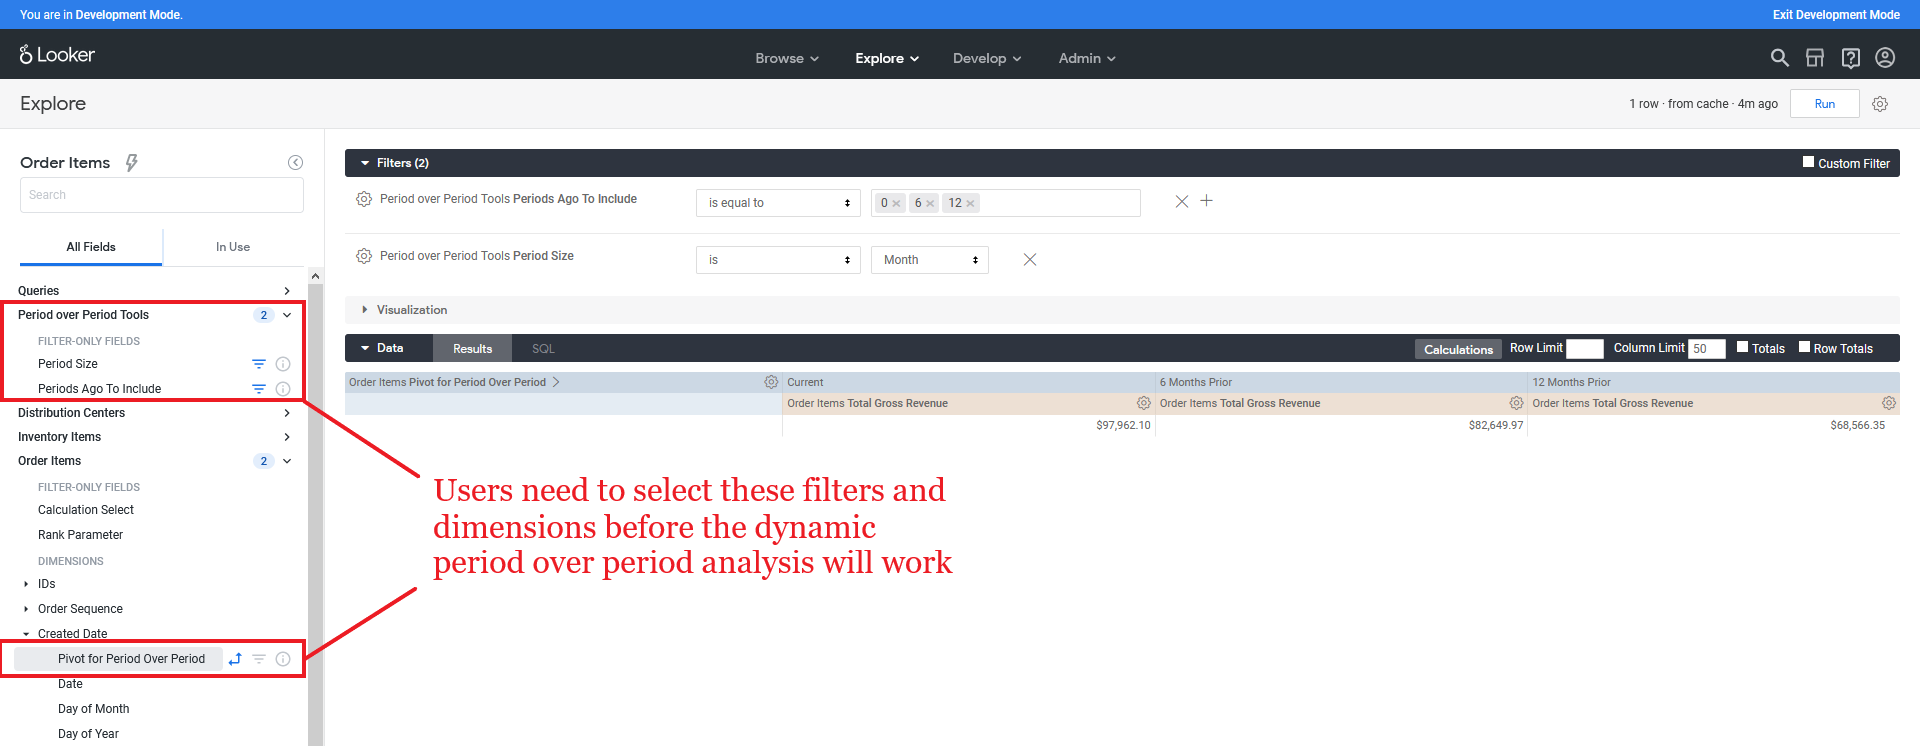 Image of Looker's User Interface with multiple fields and dimensions selected